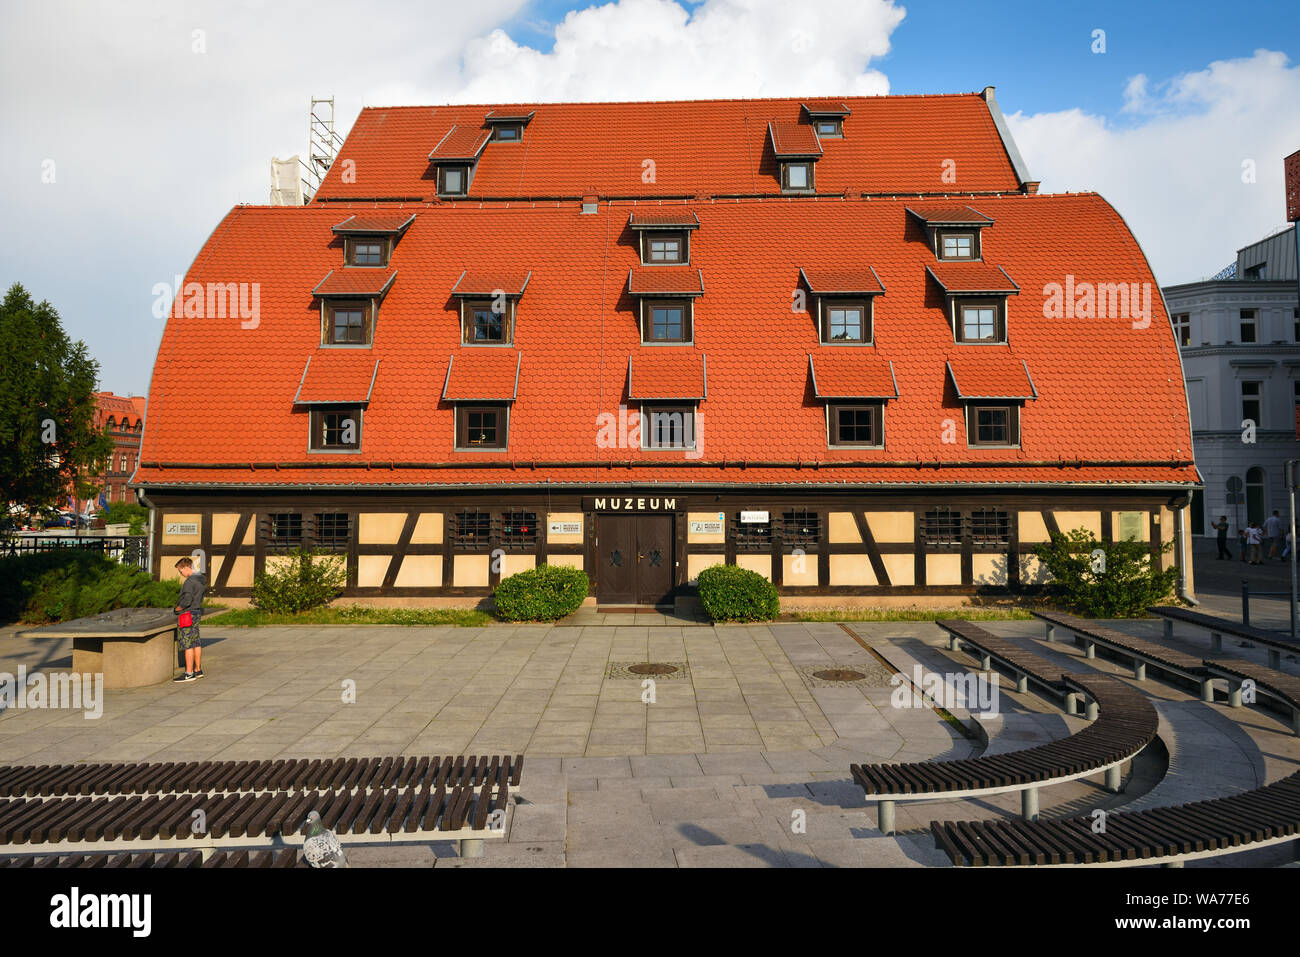 Bydgoszcz Poland - August 16, 2019: Granaries at the Brda River in Old Town of Bydgoszcz Stock Photo